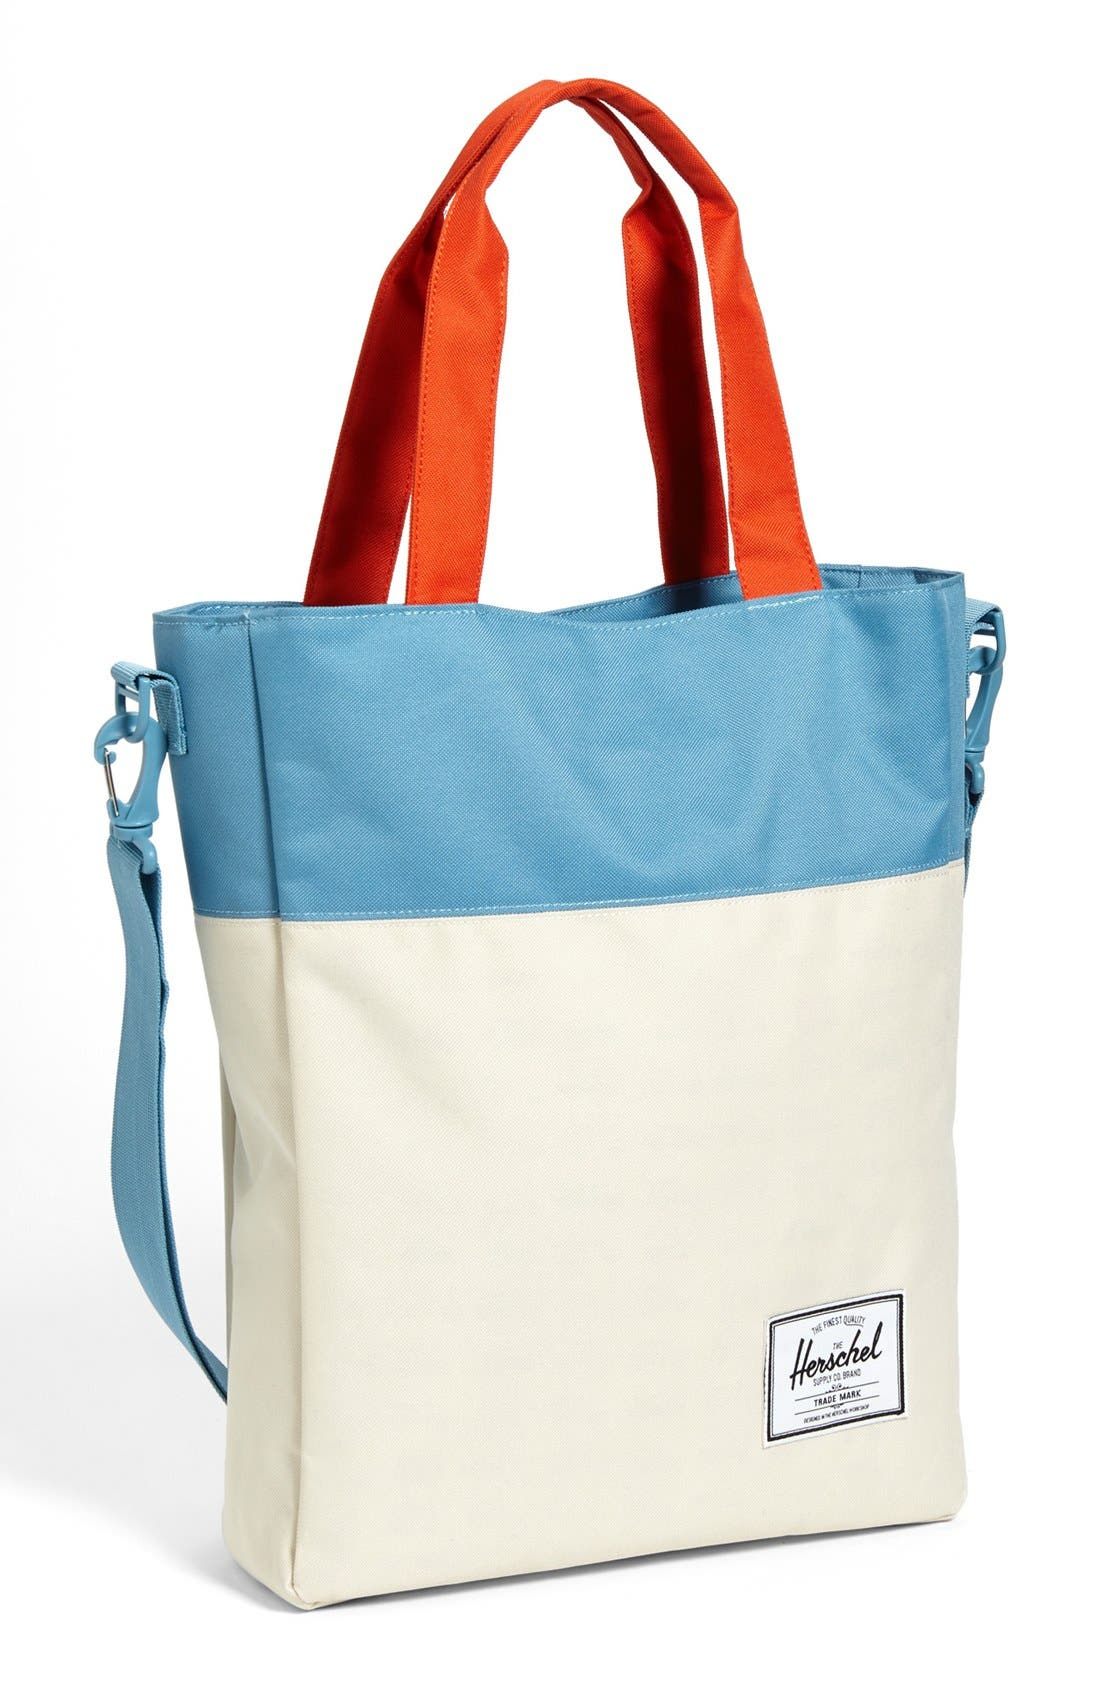 Main Image - Herschel Supply Co. 'Pier - Rad Cars with Rad Surfboards Collection' Tote Bag